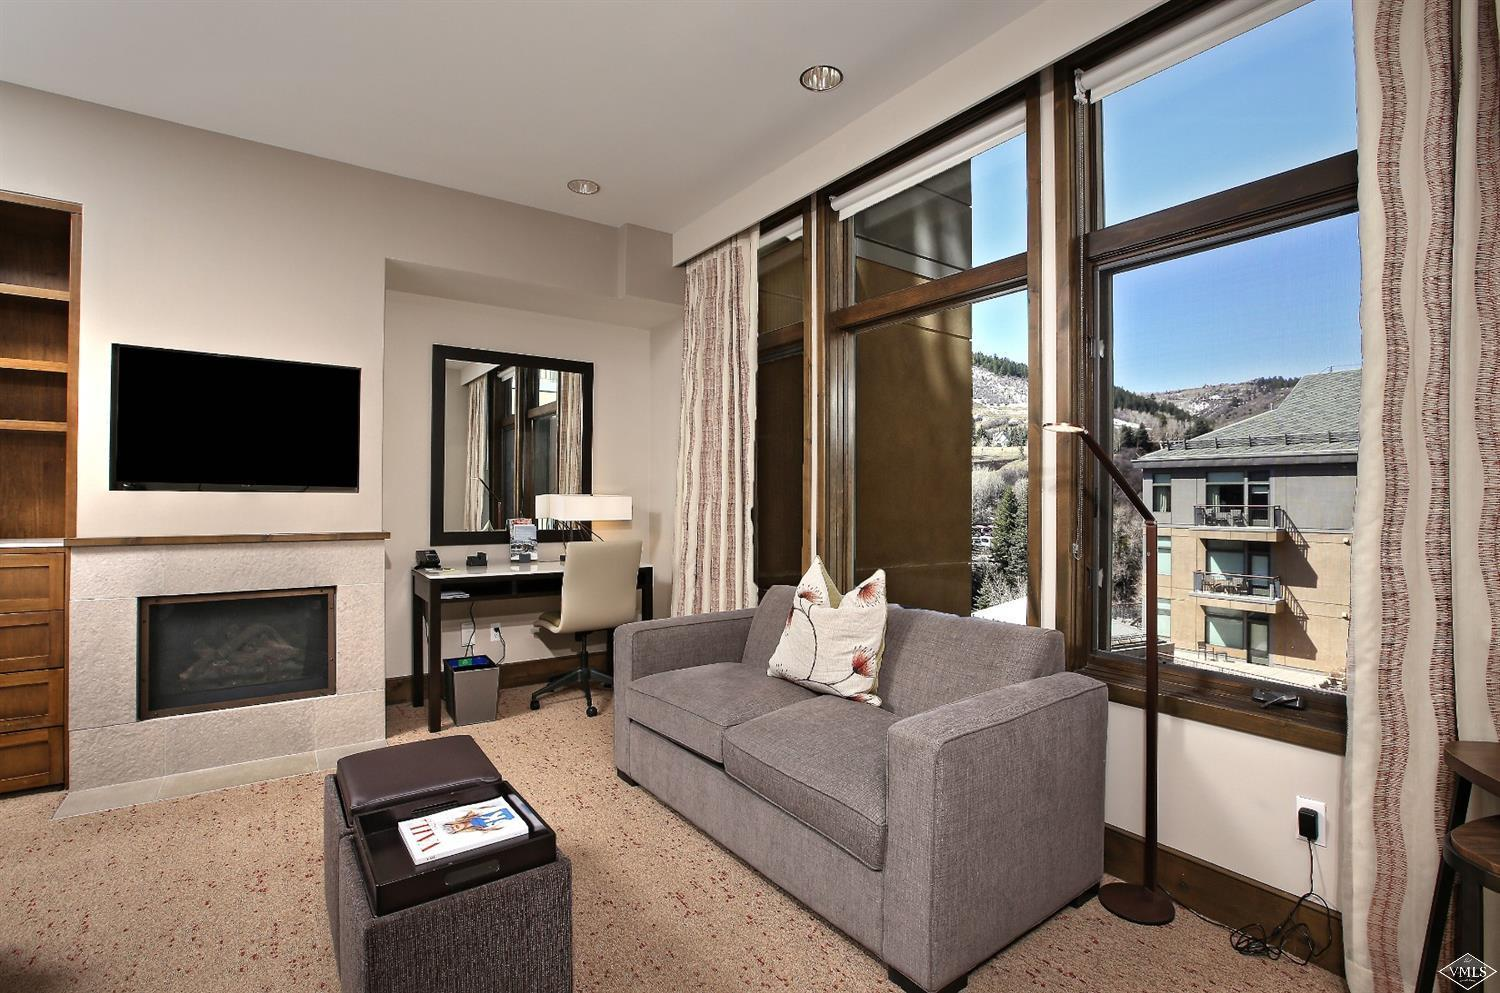 Studio Plus floor plan acts as a 1 bedroom and is more spacious than other studios. There is a small kitchenette area and dining table to seat 4. Views overlooking the pool & Eagle River.